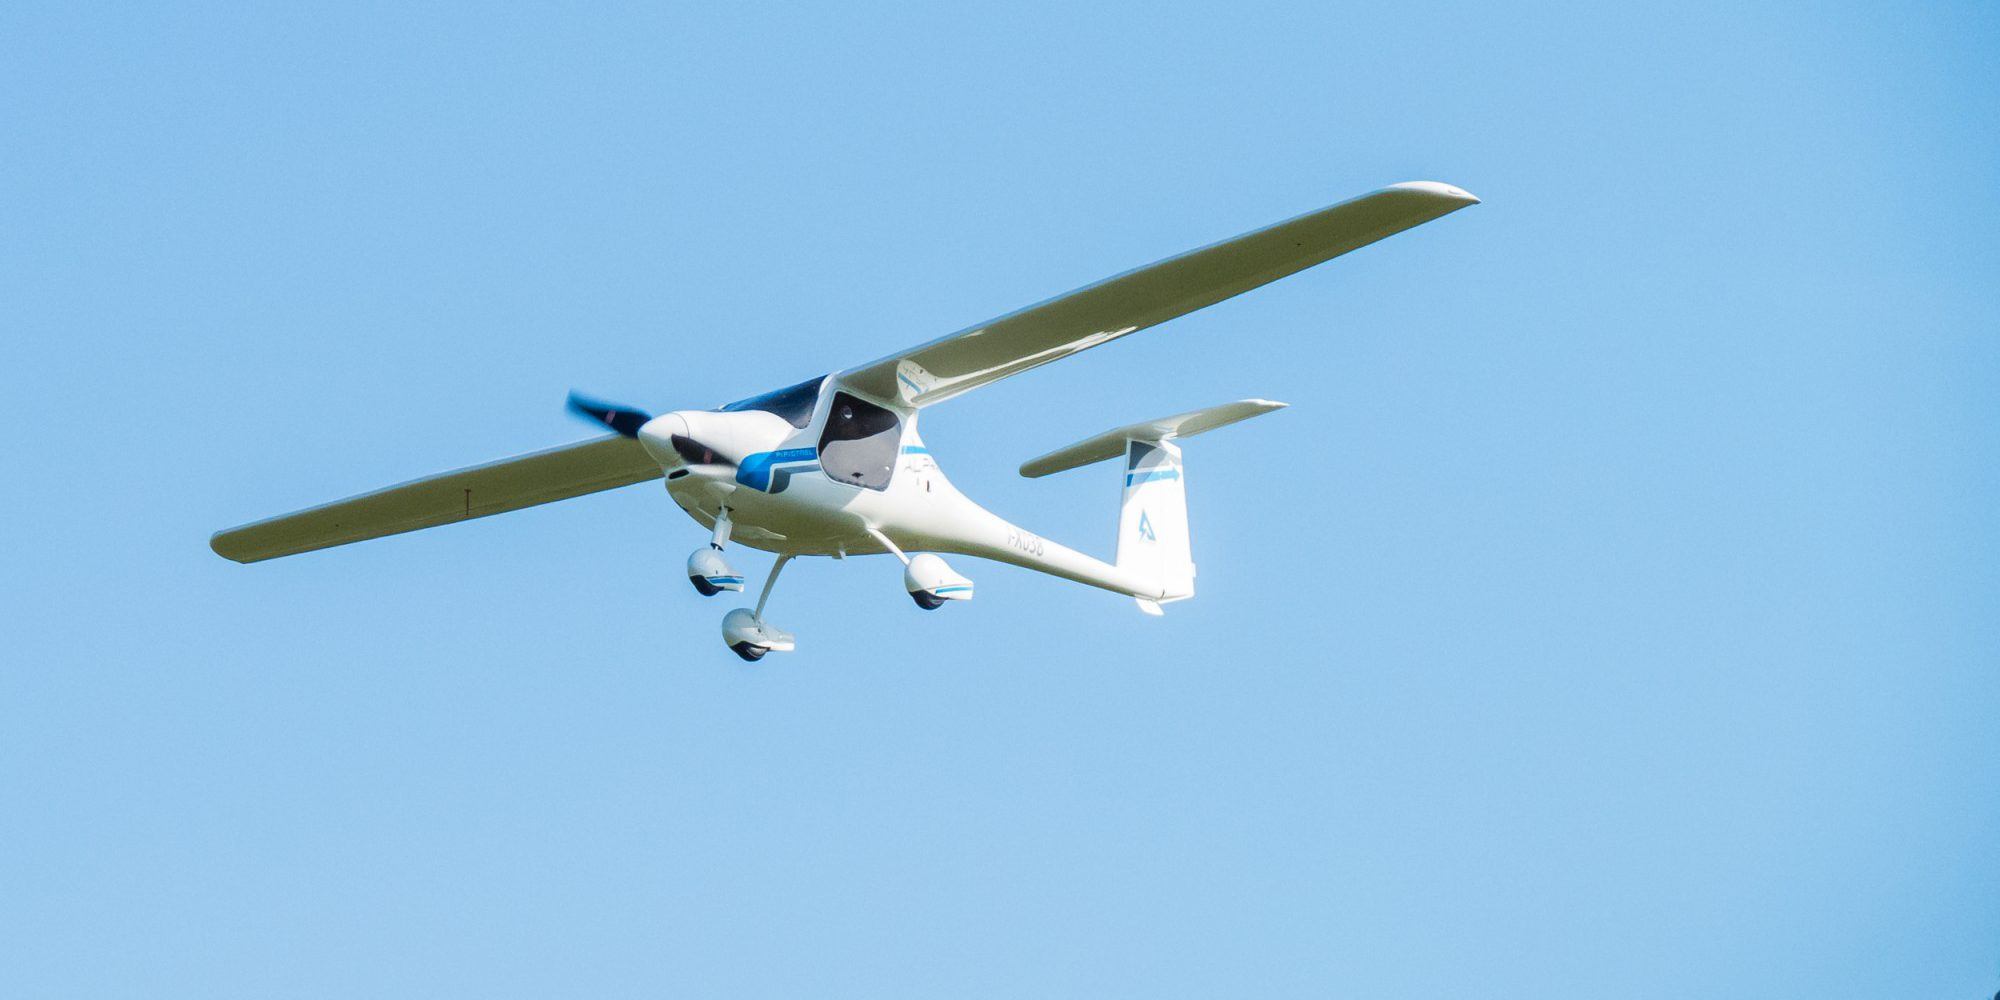 First all-electric trainer plane gets airworthiness certification from the FAA in the US